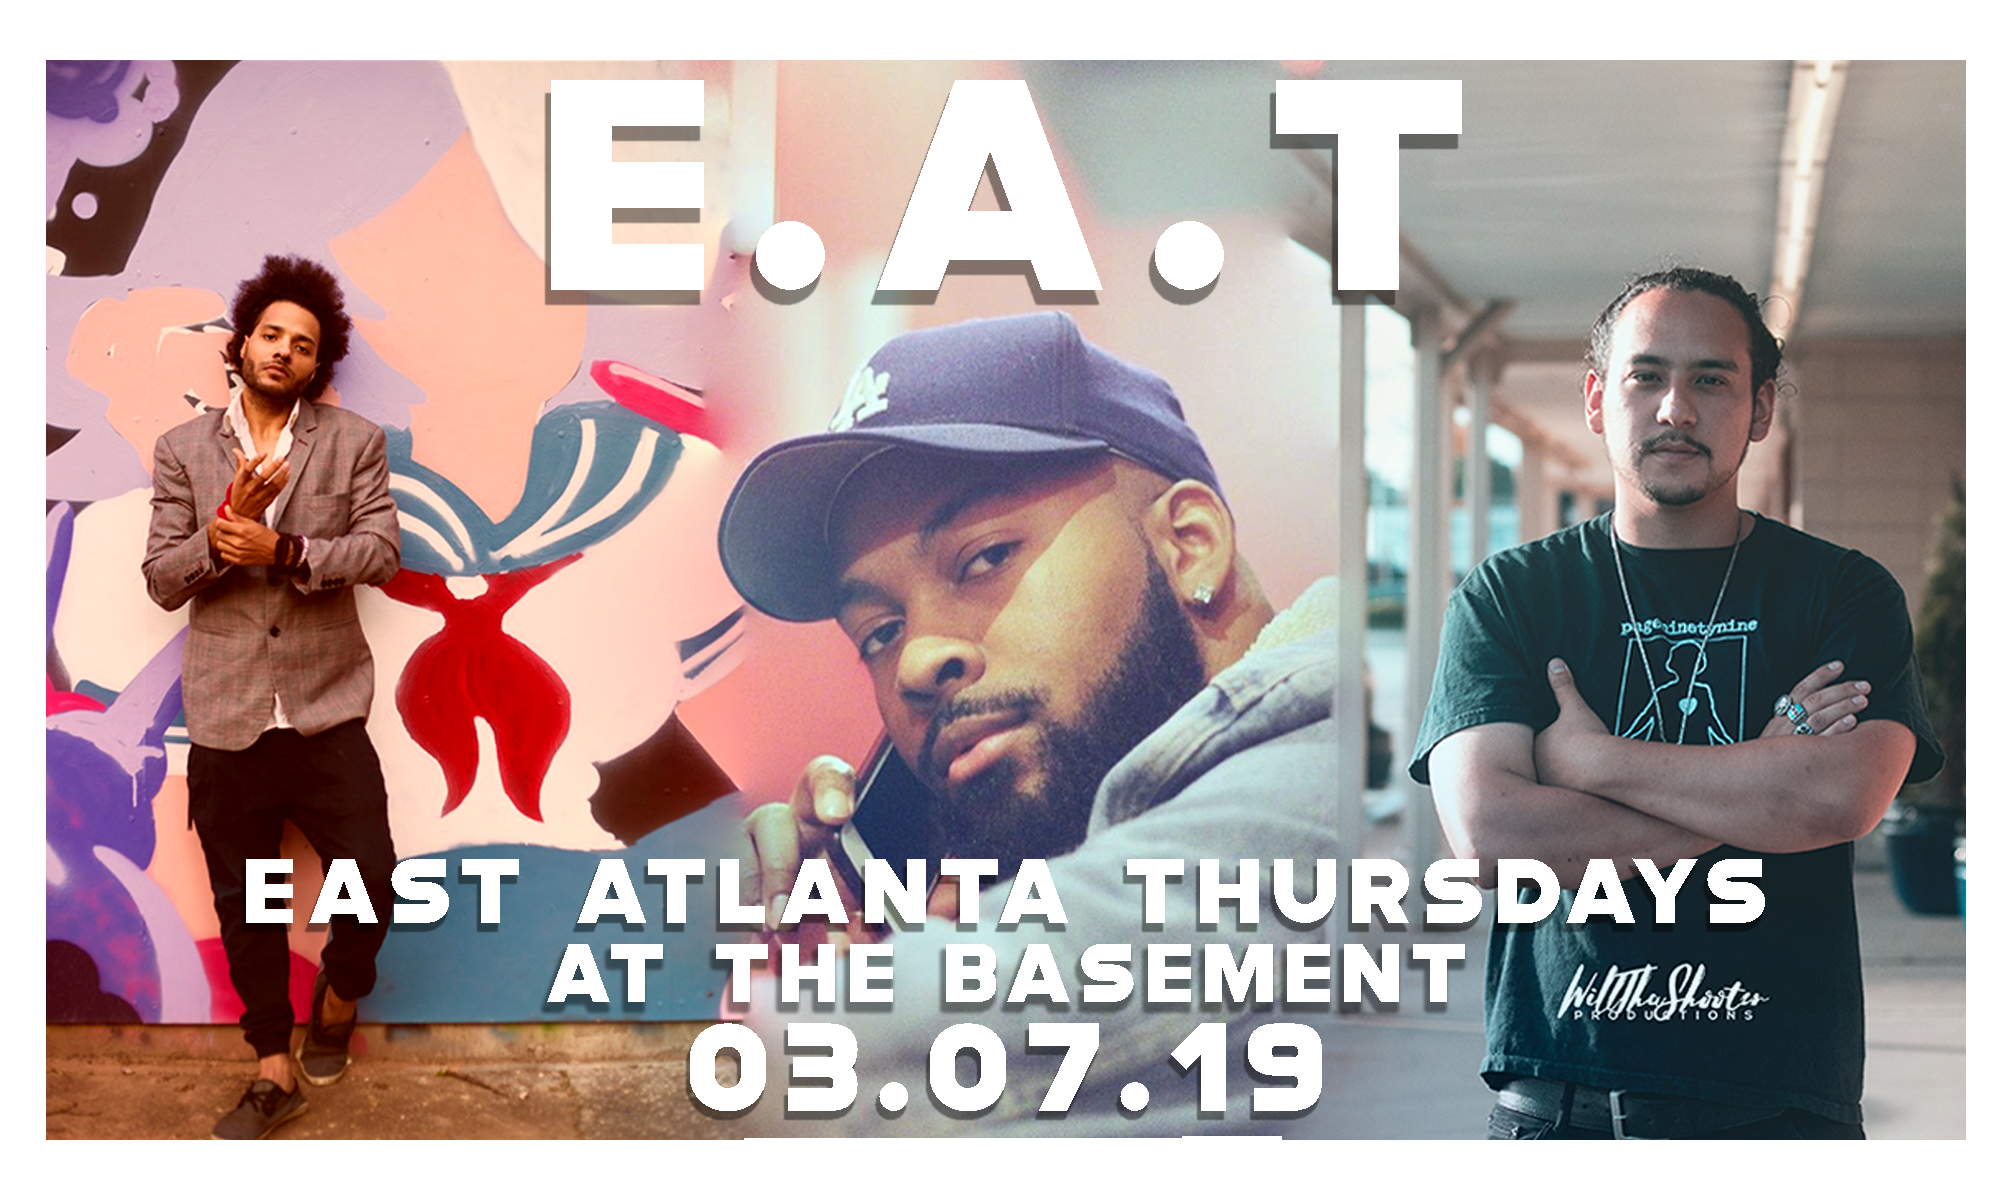 East Atlanta Thursdays - E.A.T. - at the Basement - 06.06.19